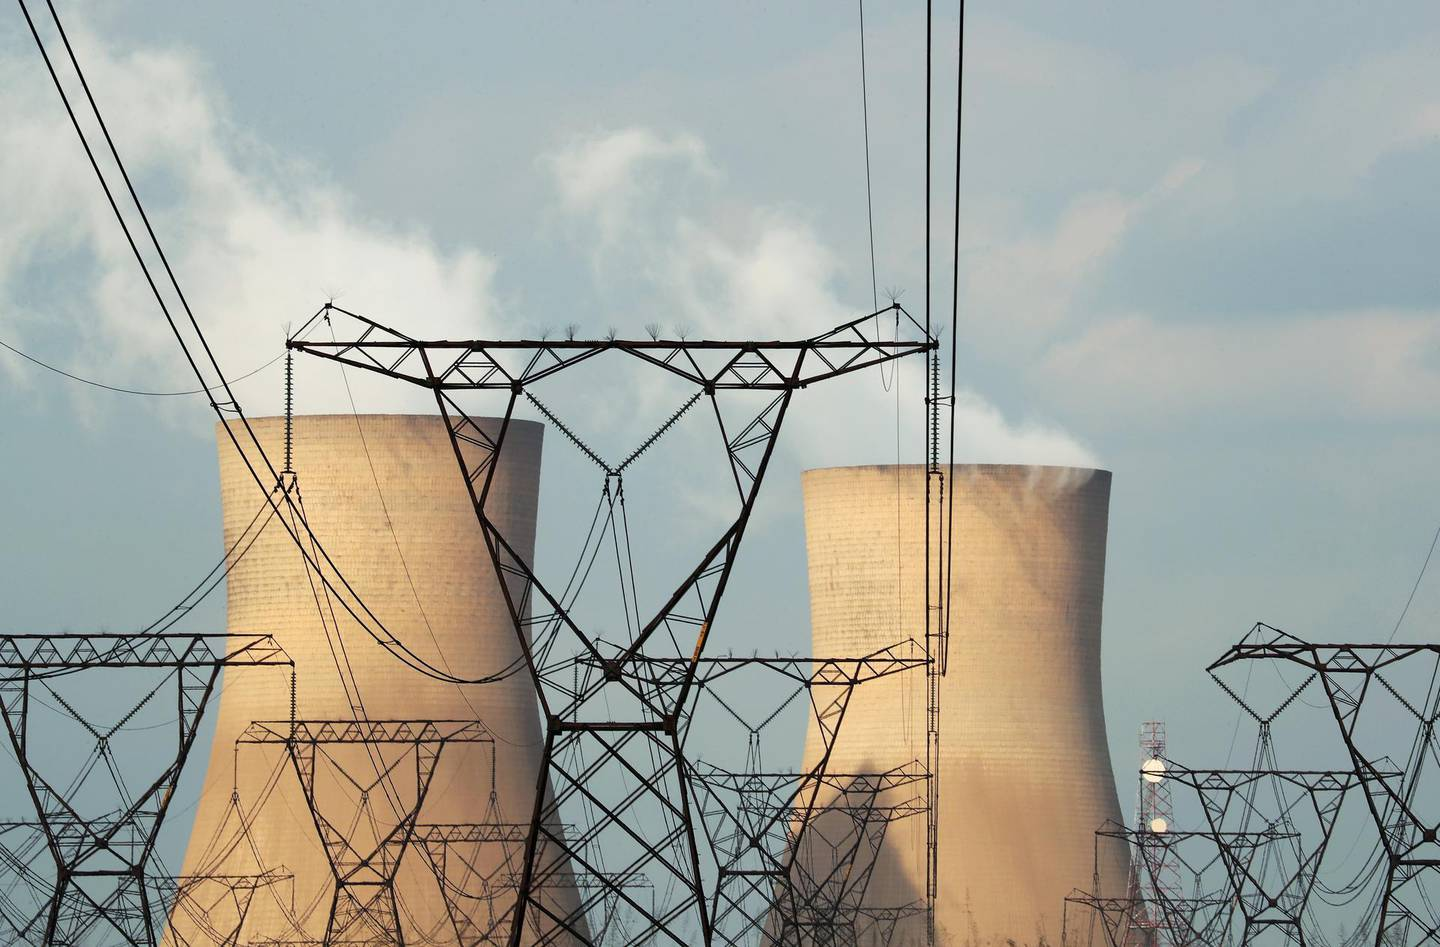 FILE PHOTO: Cooling towers are pictured at a coal-based power station owned by state power utility Eskom in Duhva, South Africa, February 18, 2020.  Picture taken February 18, 2020. REUTERS/Mike Hutchings/File Photo